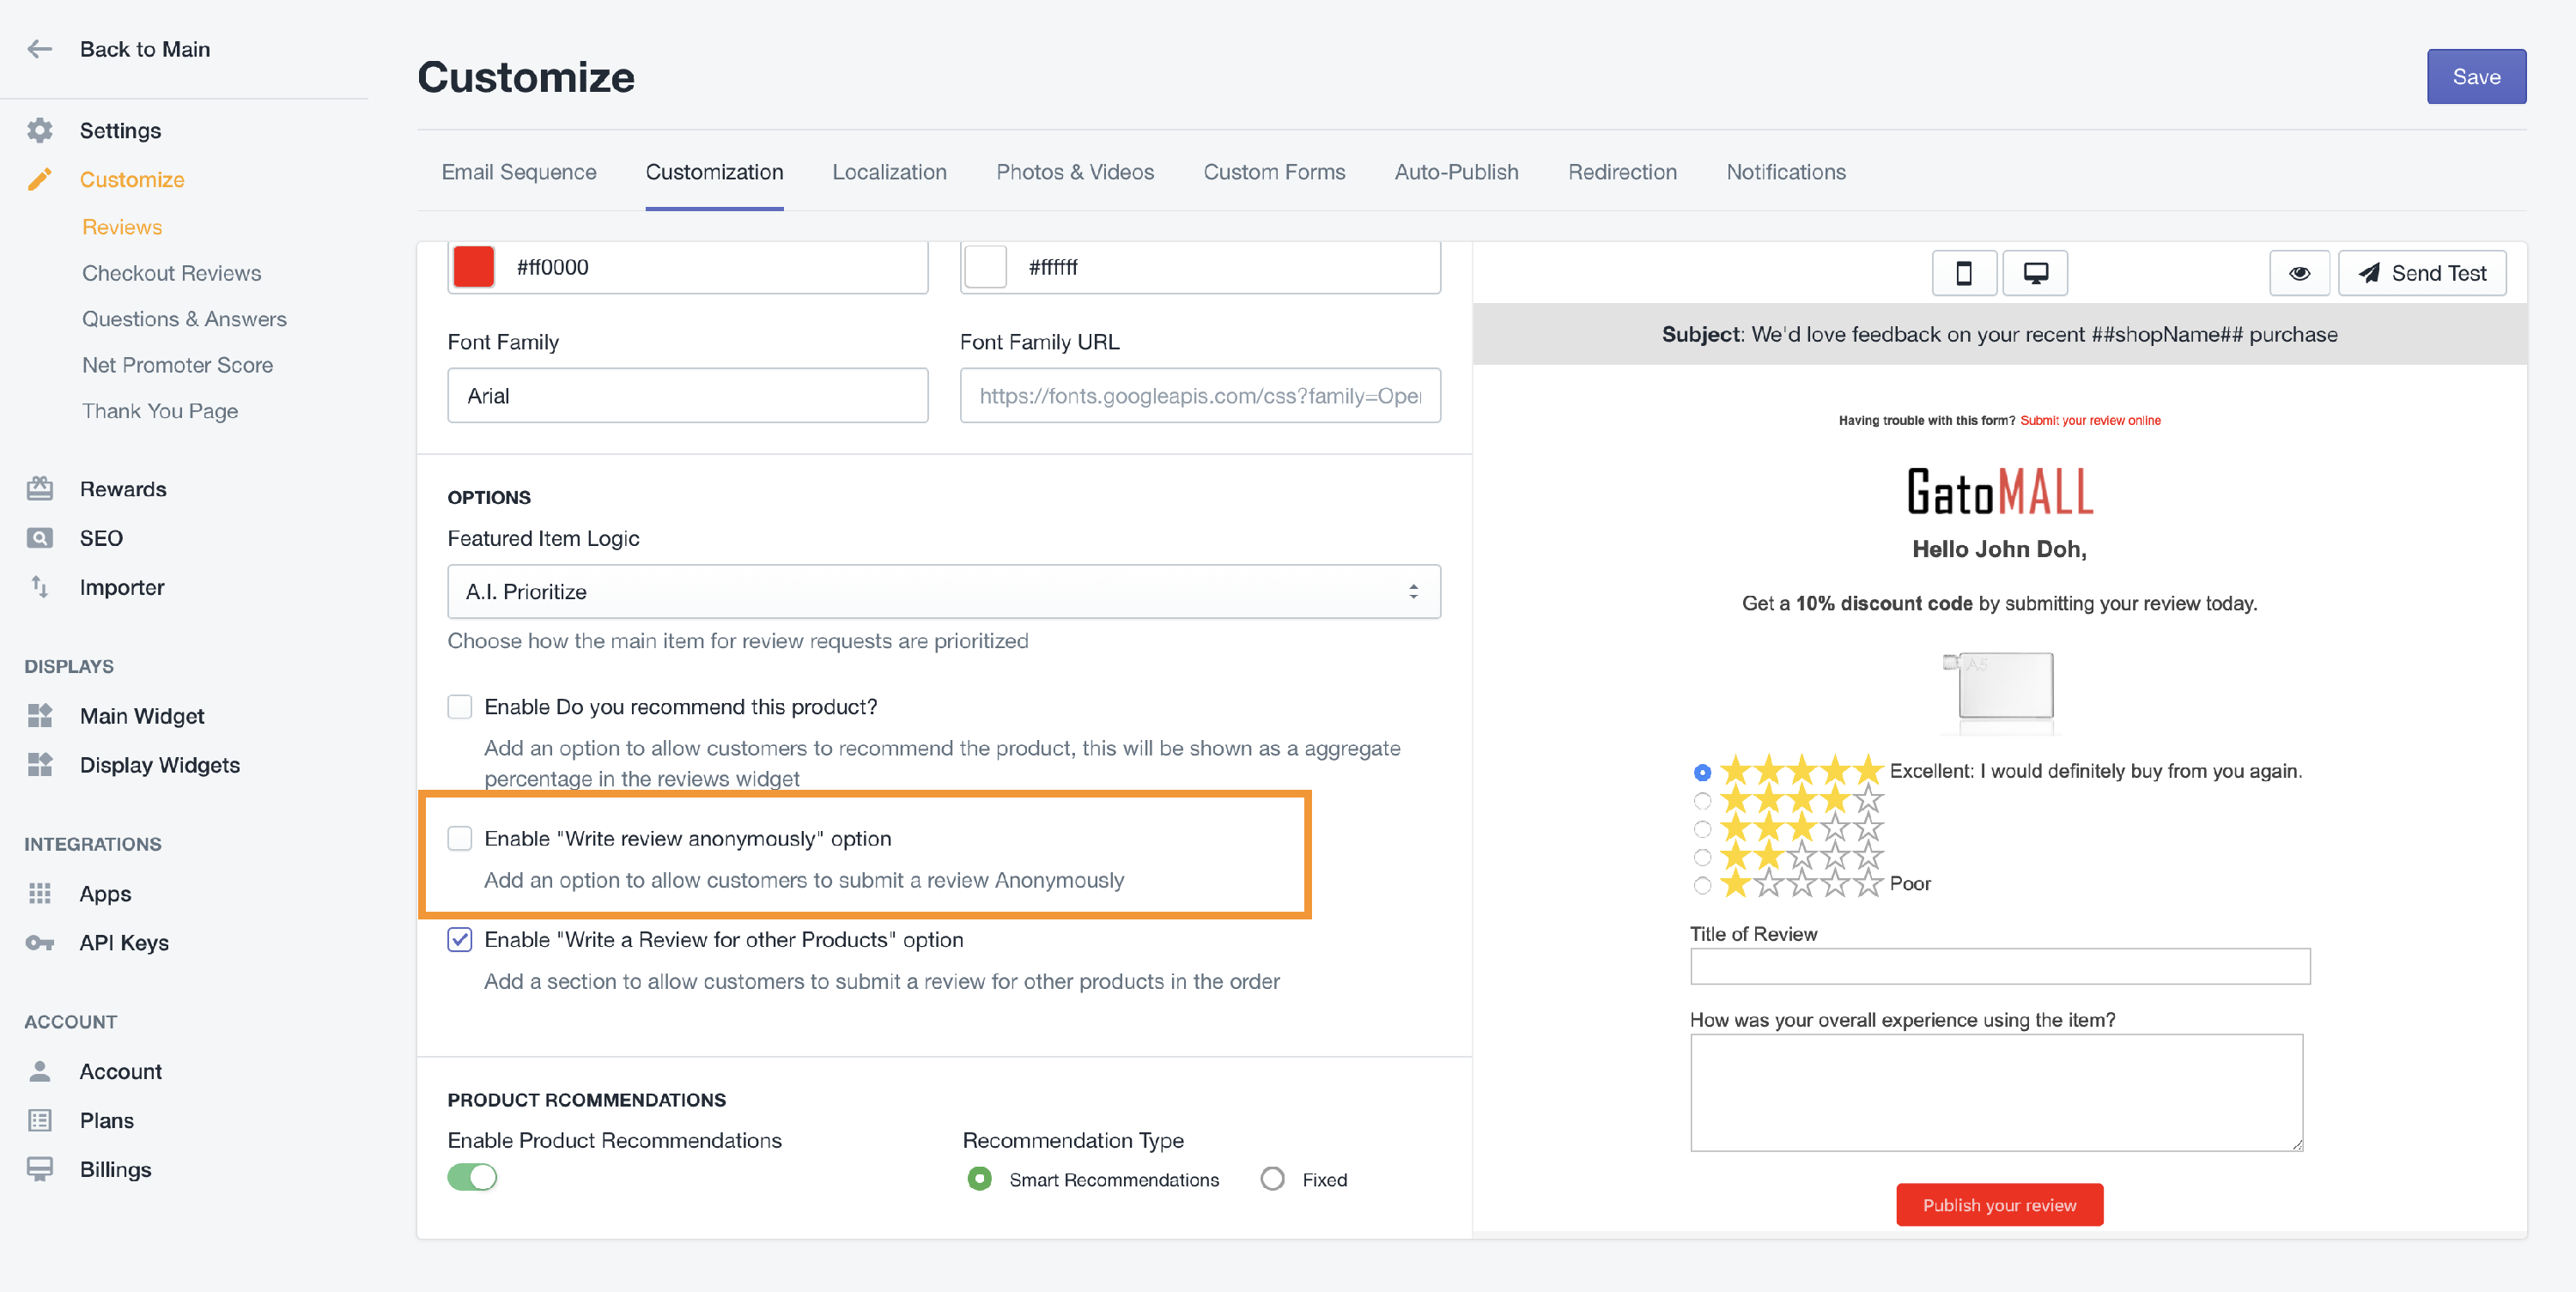 Reviews - Enable / Disable Anonymous Review from Customer